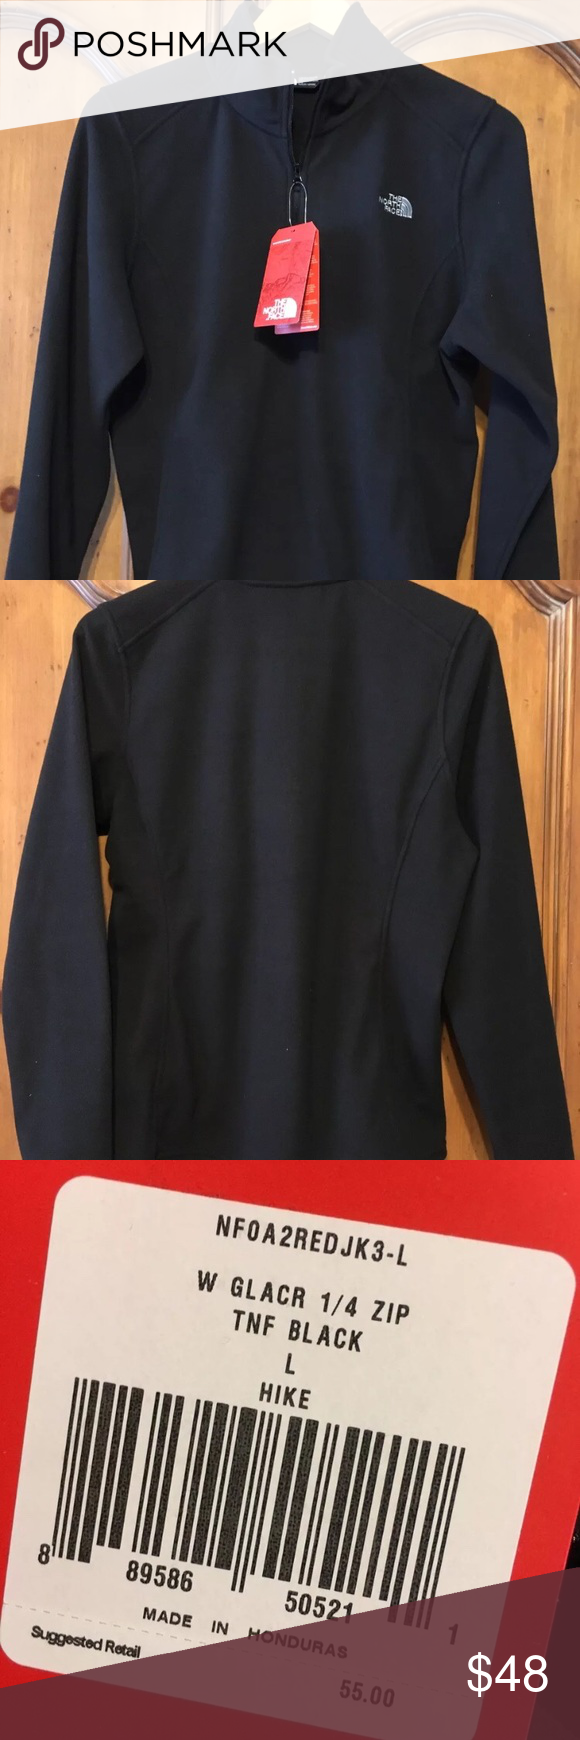 c9942b379 Nwt North face large glacier 1/4 zip fleece New with tags ...